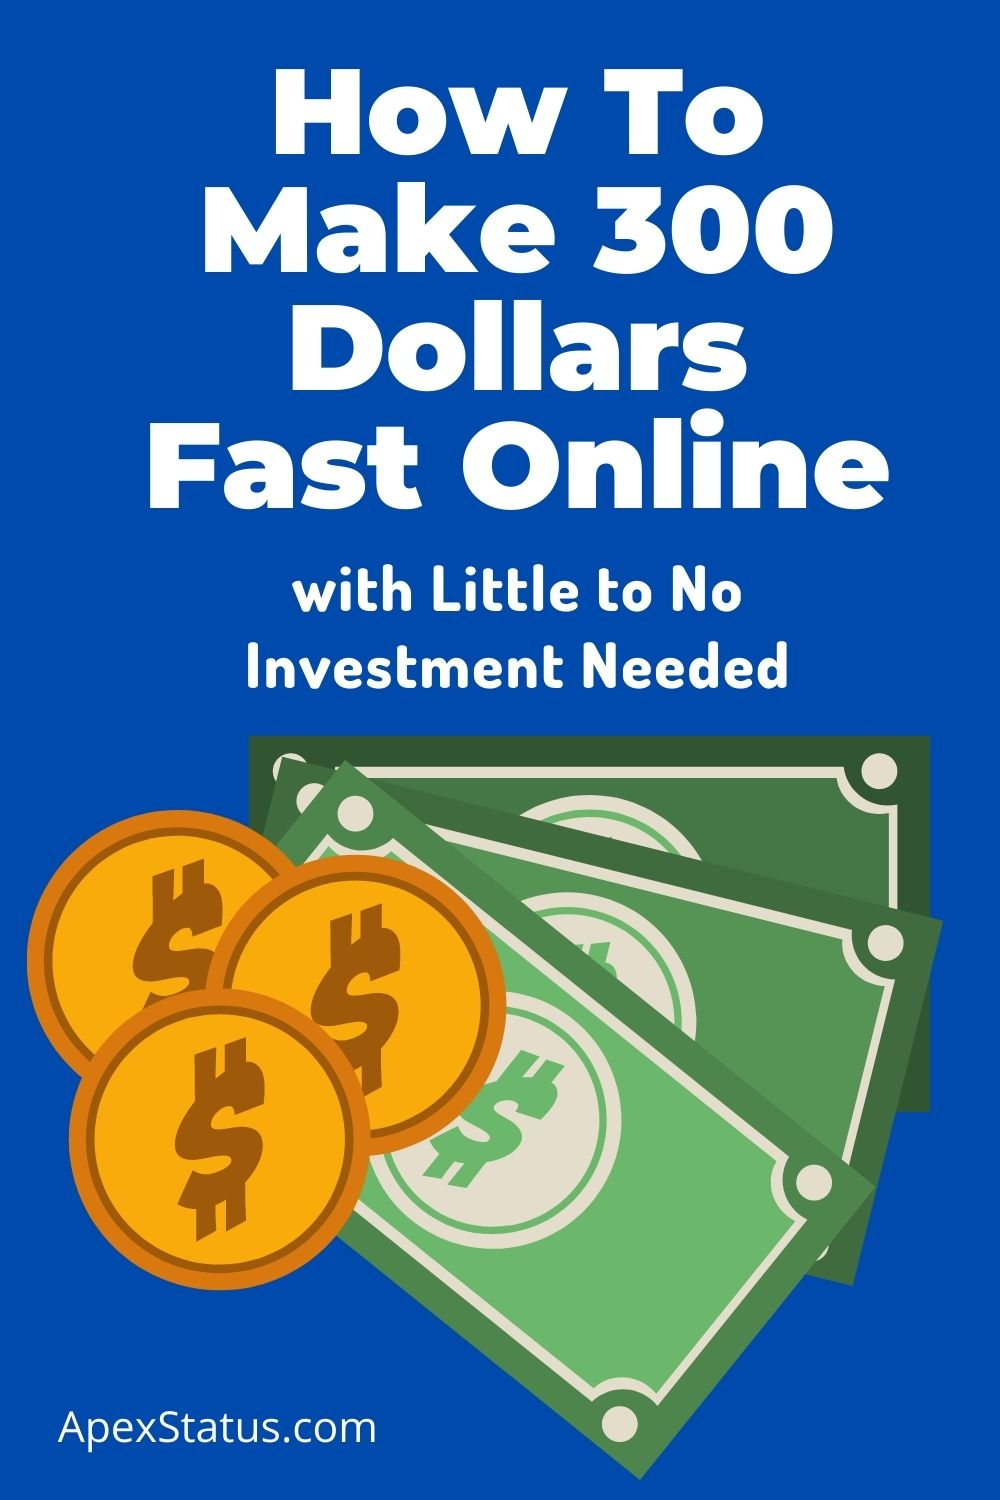 How To Make 300 dollars Fast Online with Little to No Investment Needed